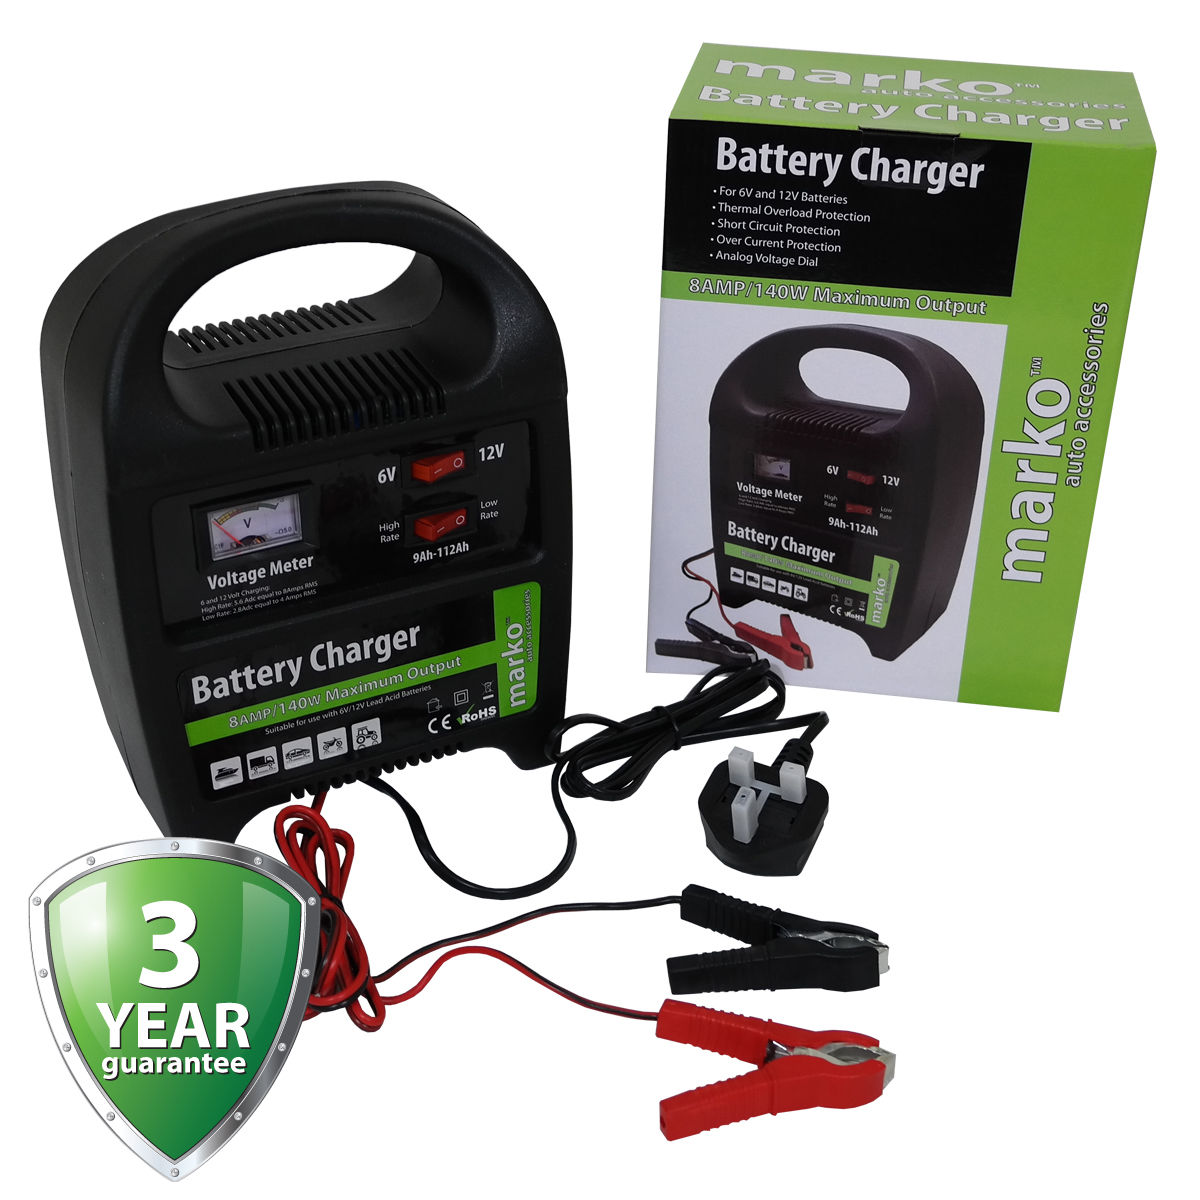 Details About 8amp 6v 12v Heavy Duty Vehicle Battery Charger Car Van Compact Portable Electric